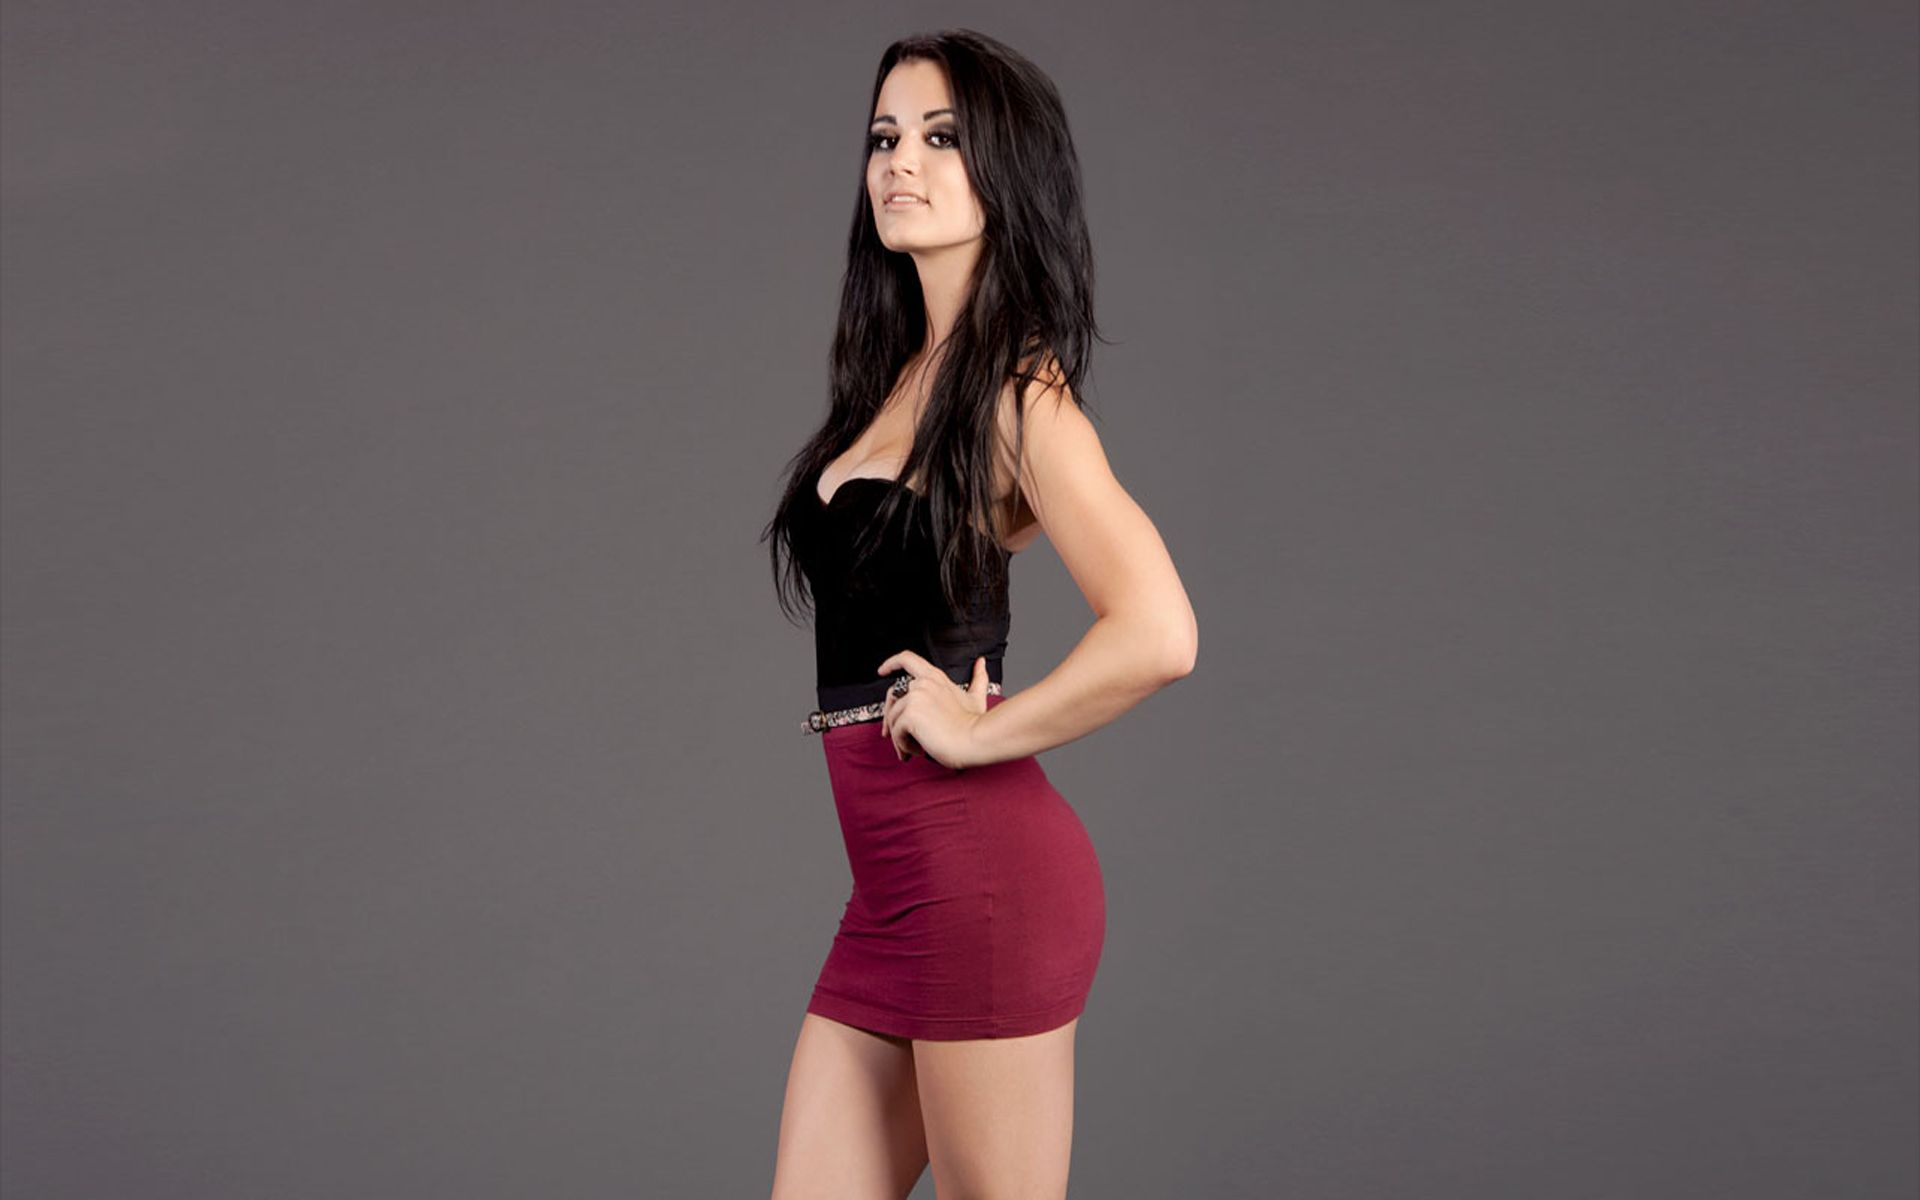 Paige sexy look pic